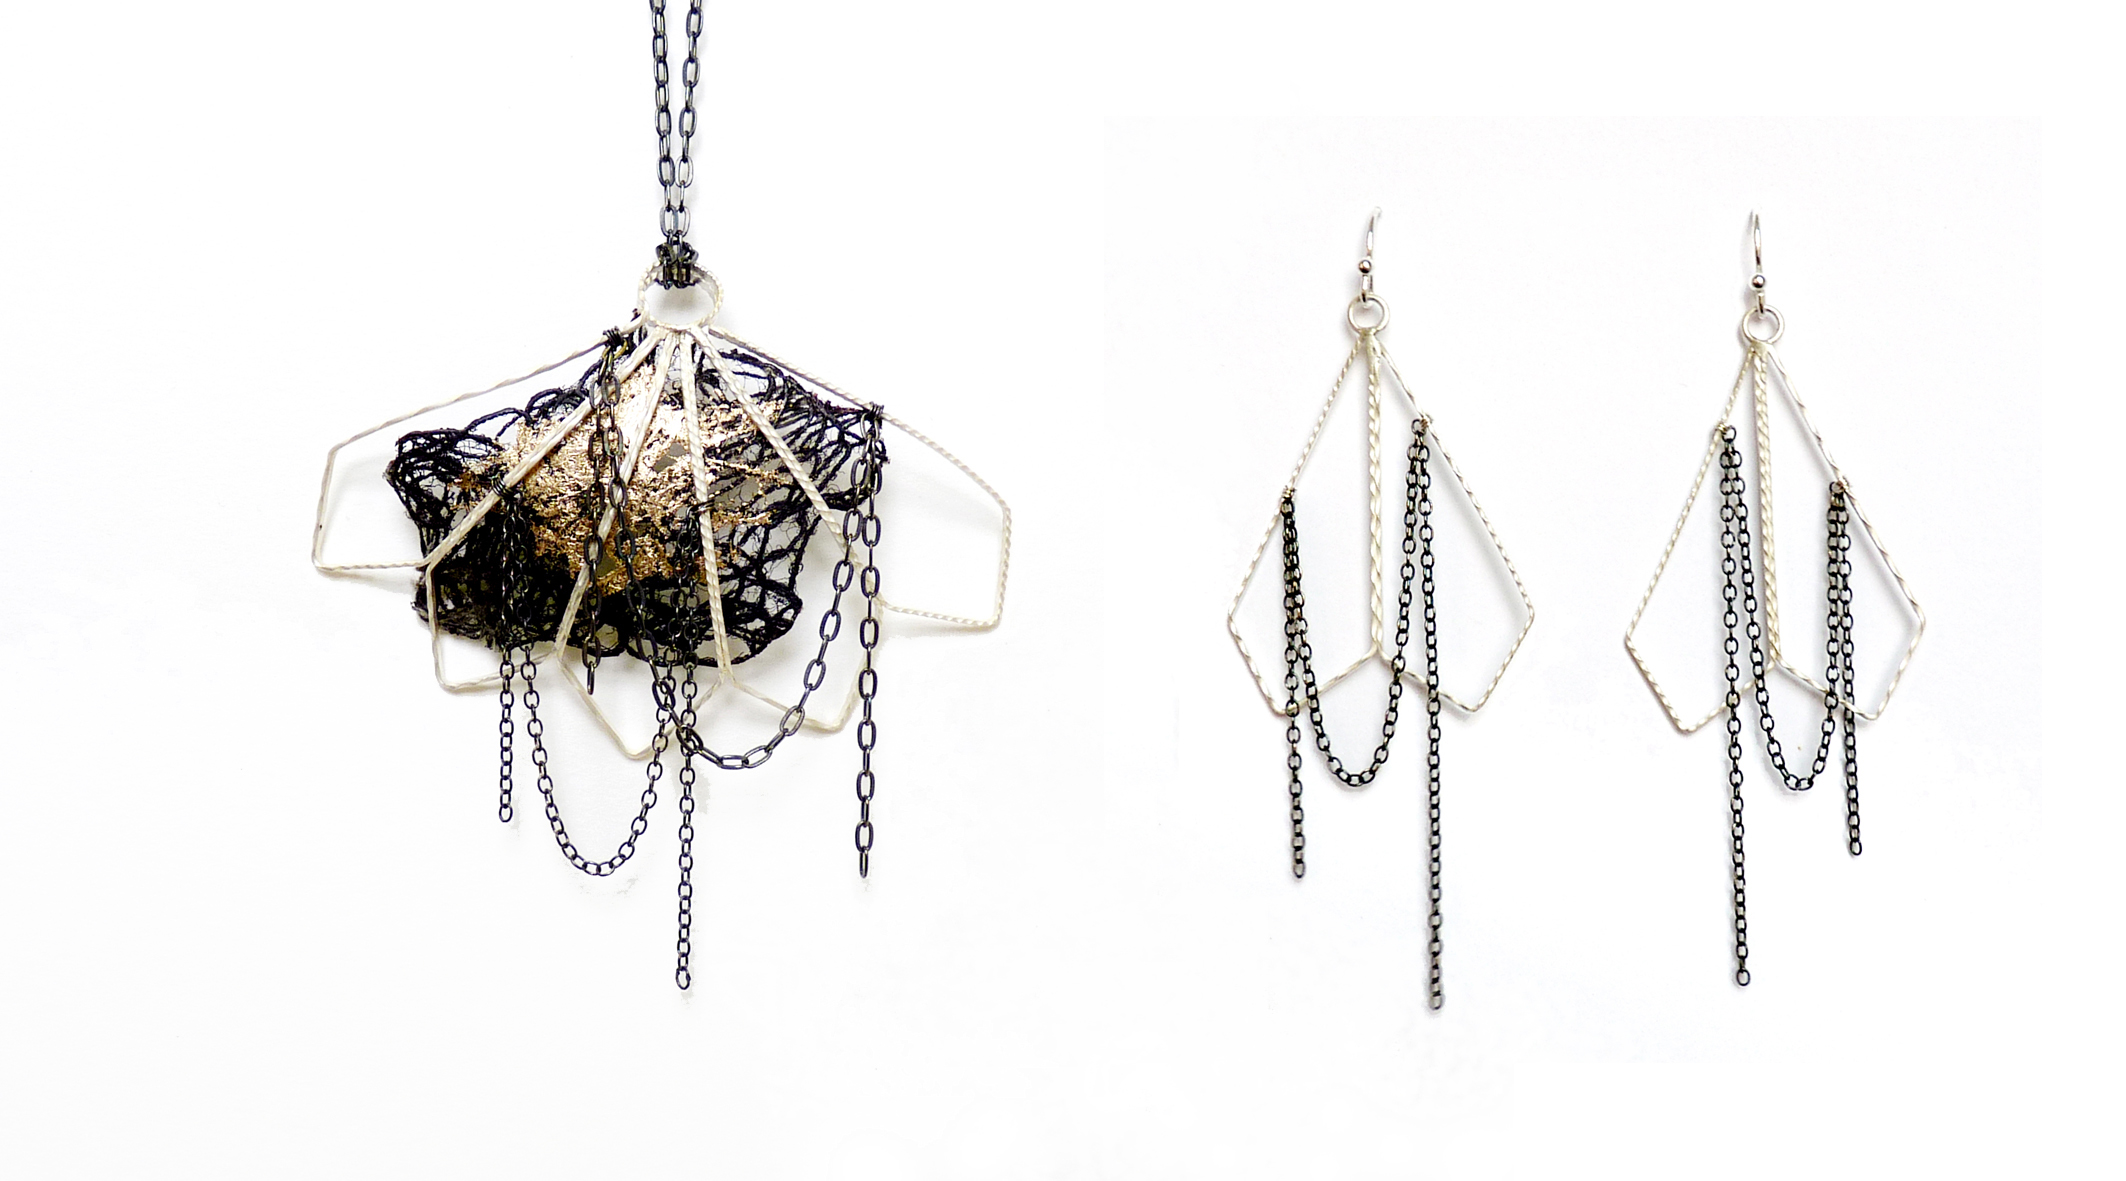 Diamond Fan Pendant and Earrings -  silver, copper coated textile, gold leaf.2012